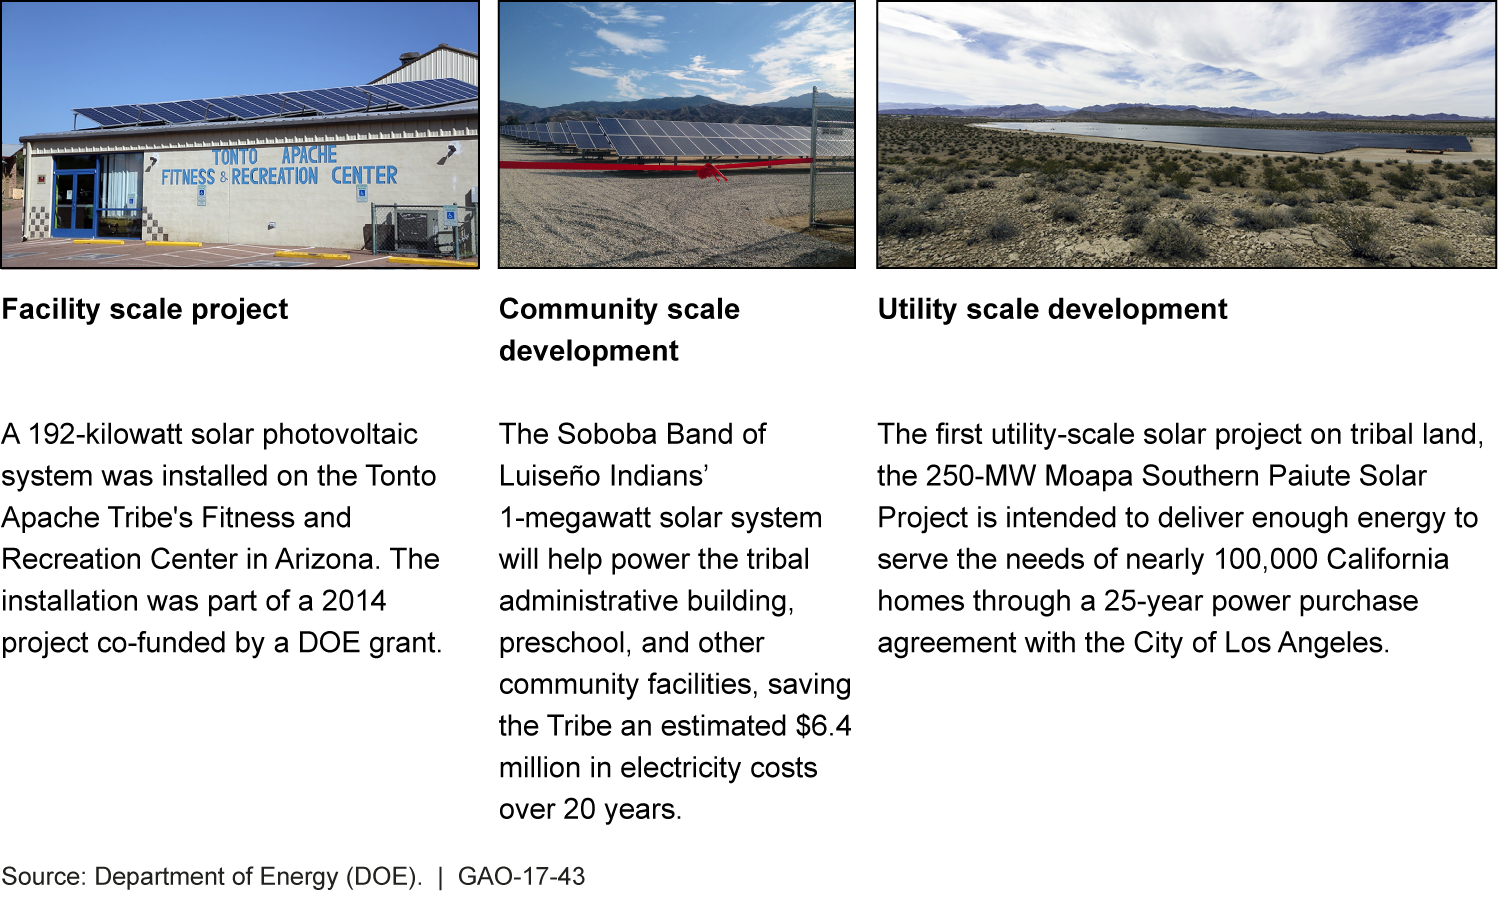 3 photos solar projects on tribal lands, 1 on the roof of a recreation center, the others in fields